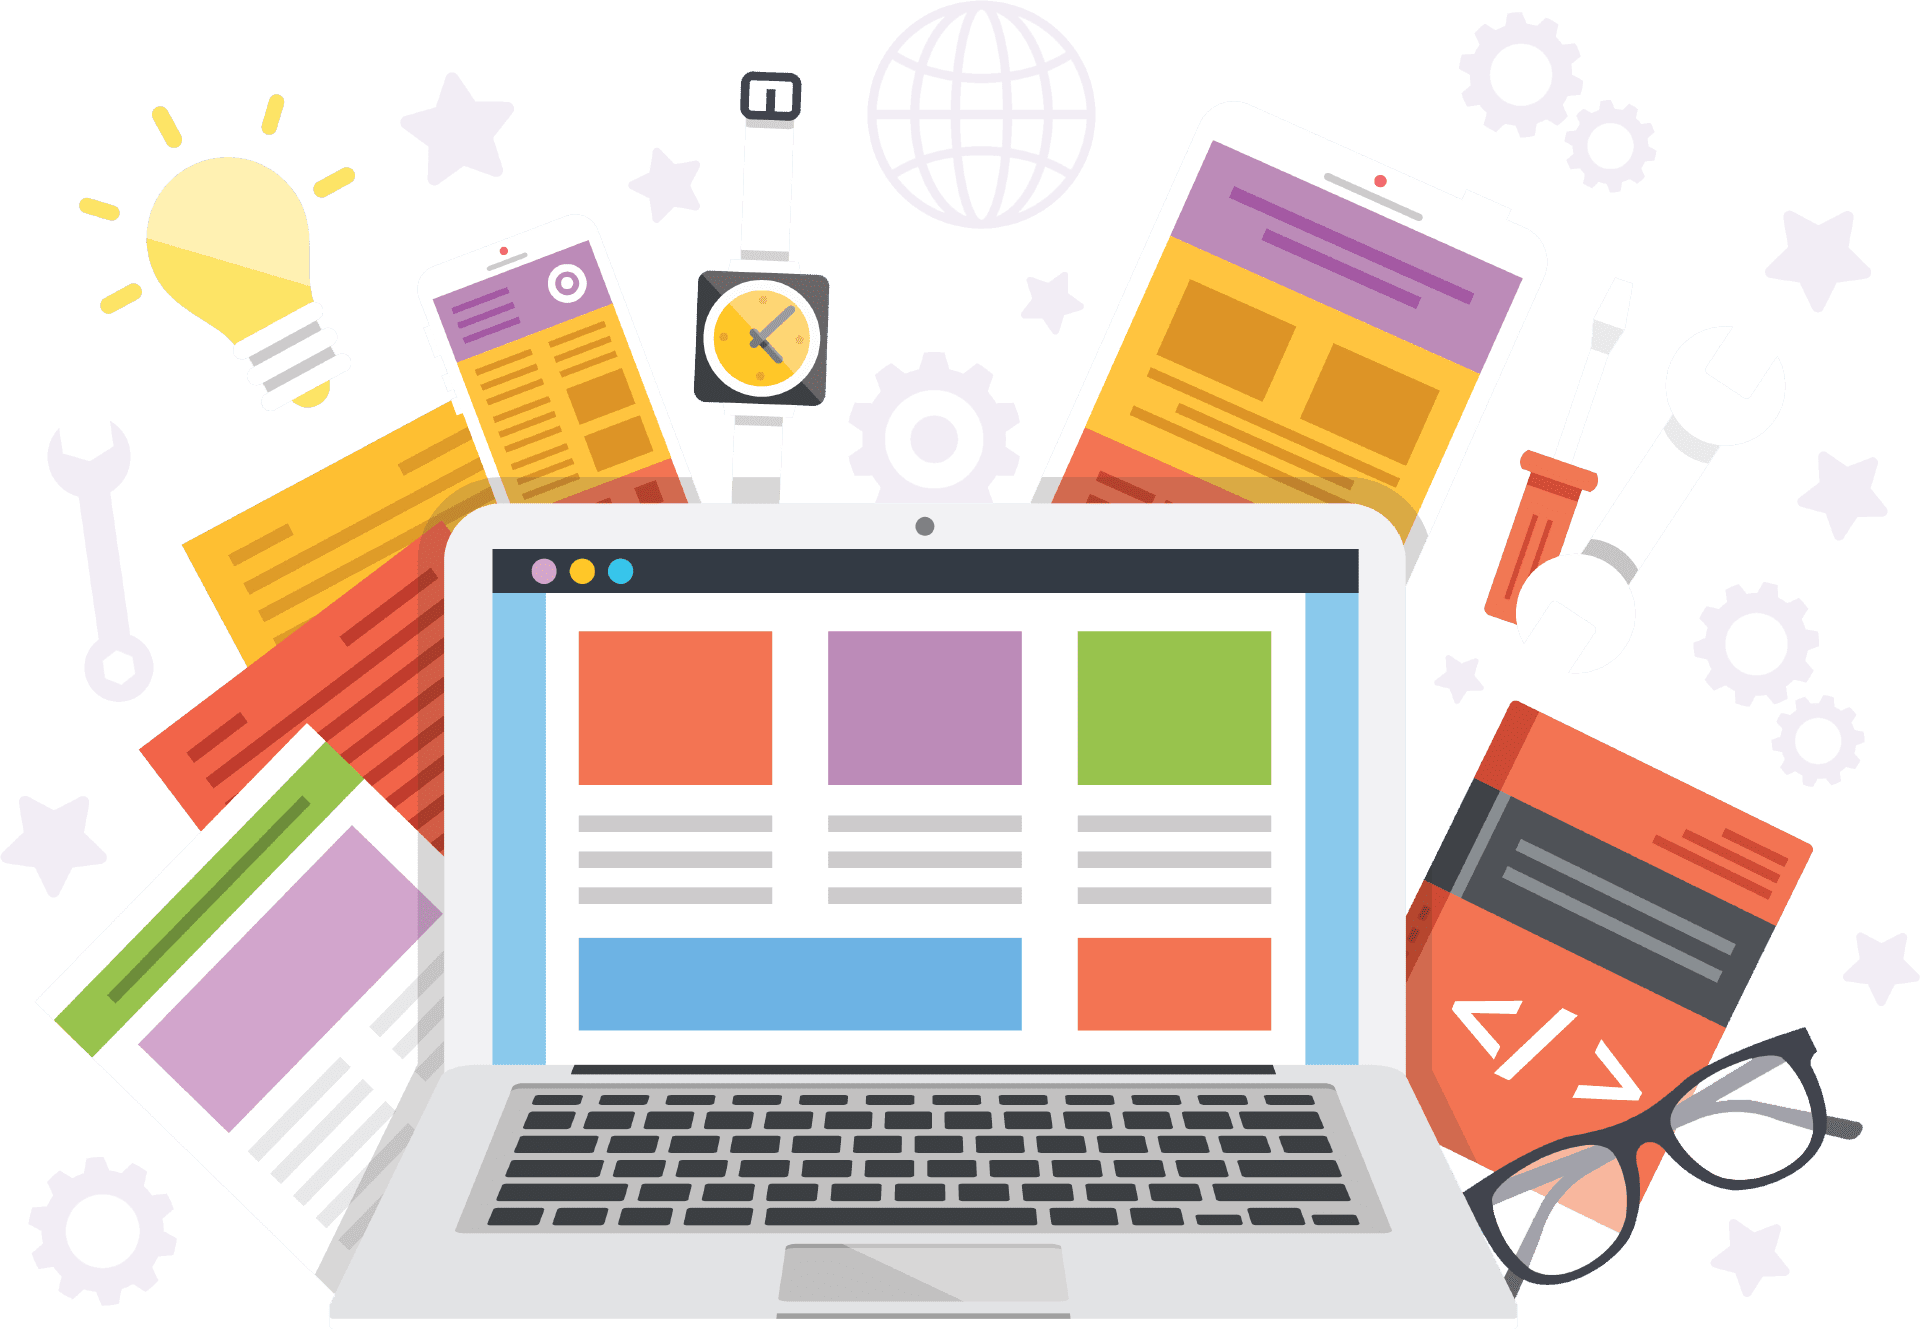 Illustration of various items relating to digital design and web development